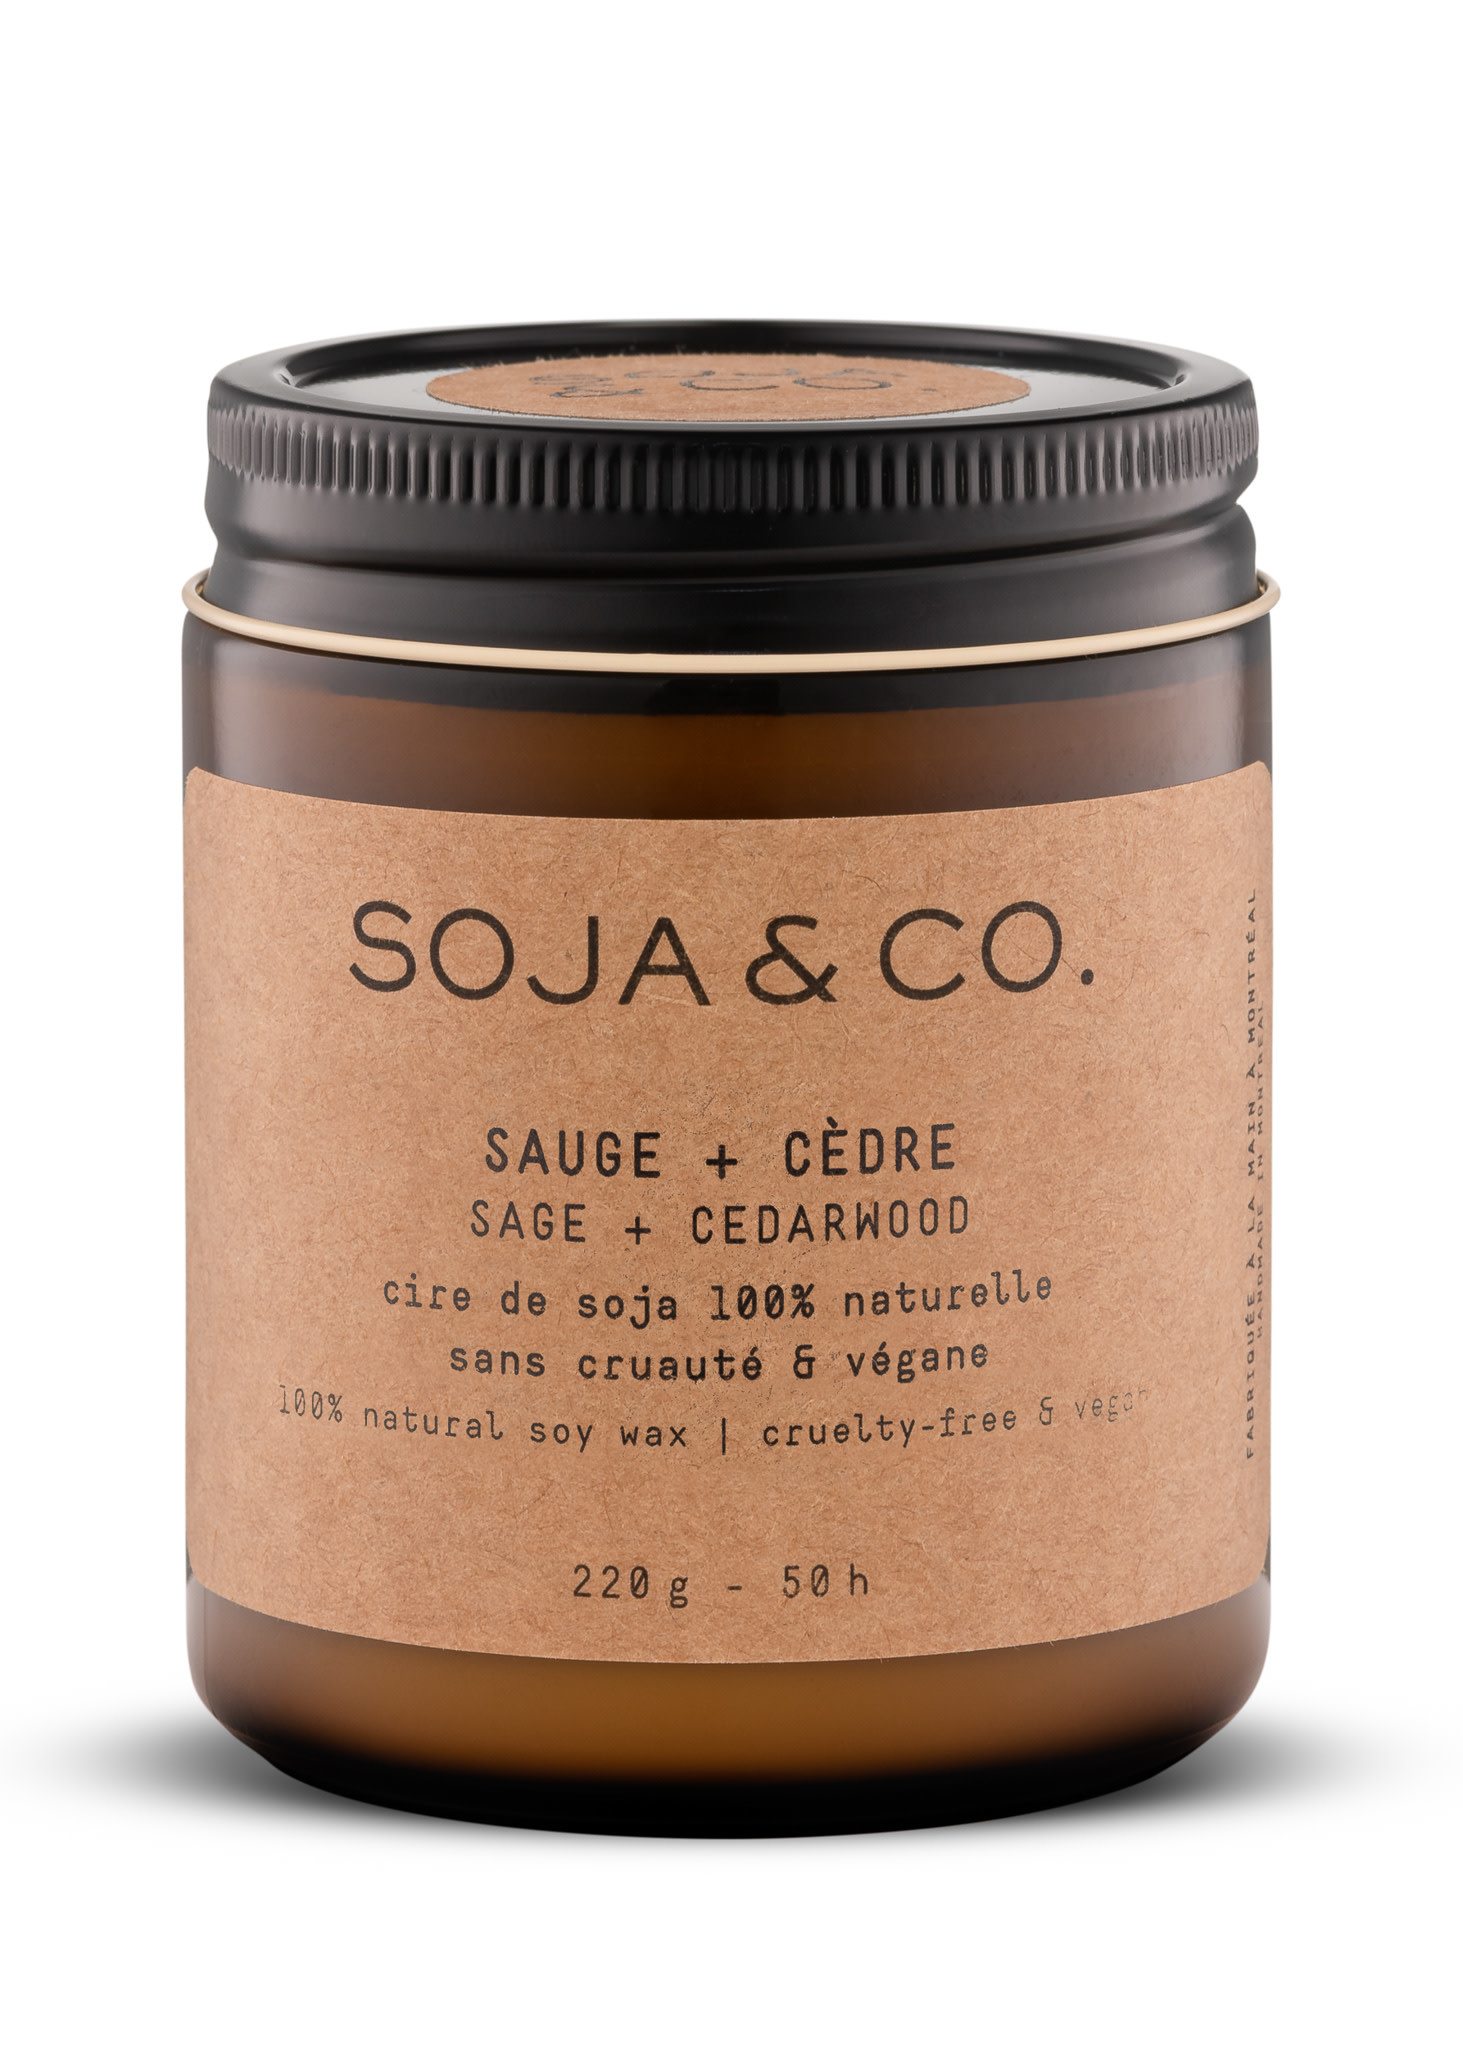 SOJA & CO Bougie Sauge + Cèdre